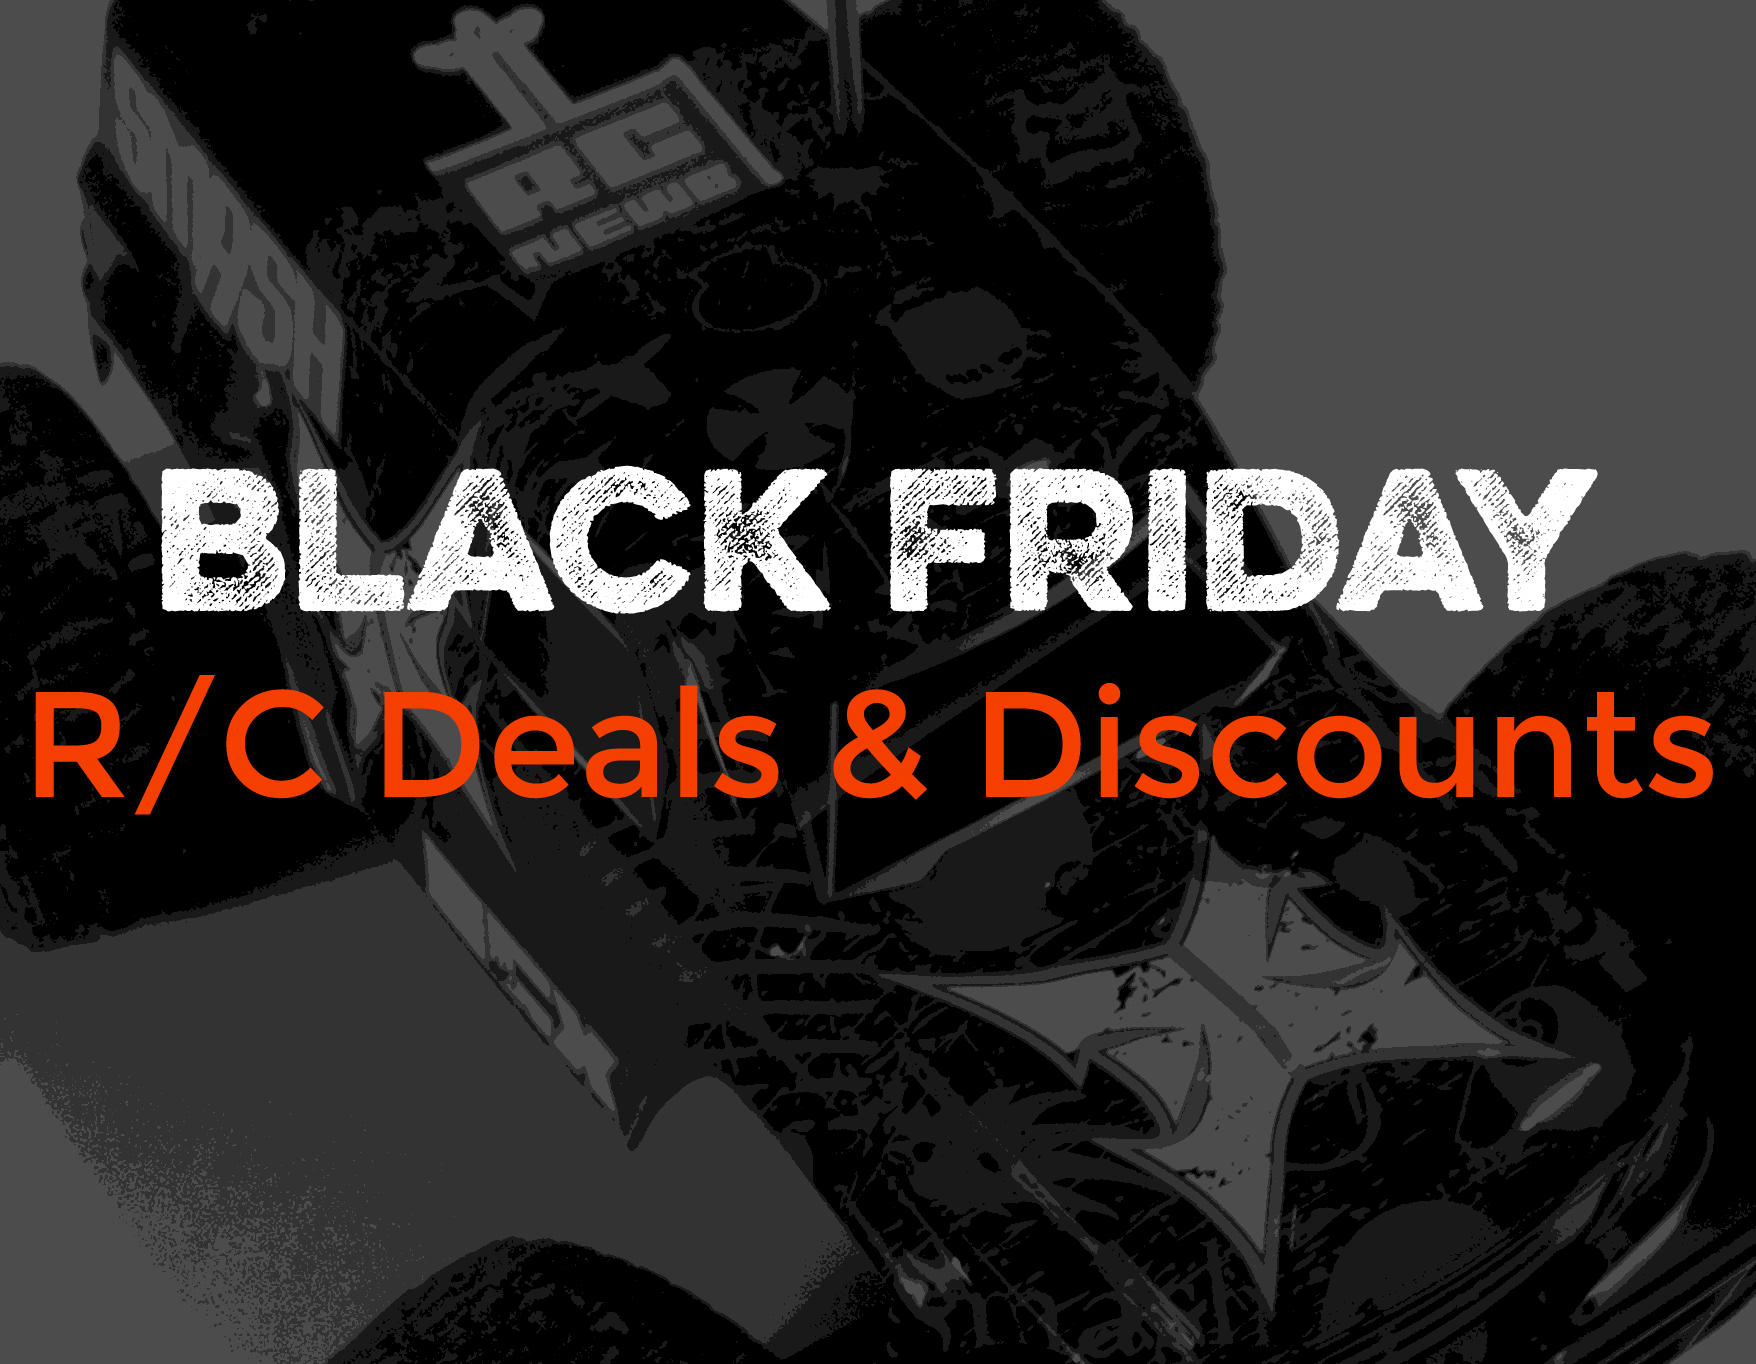 Black Friday Savings for R/C Cars